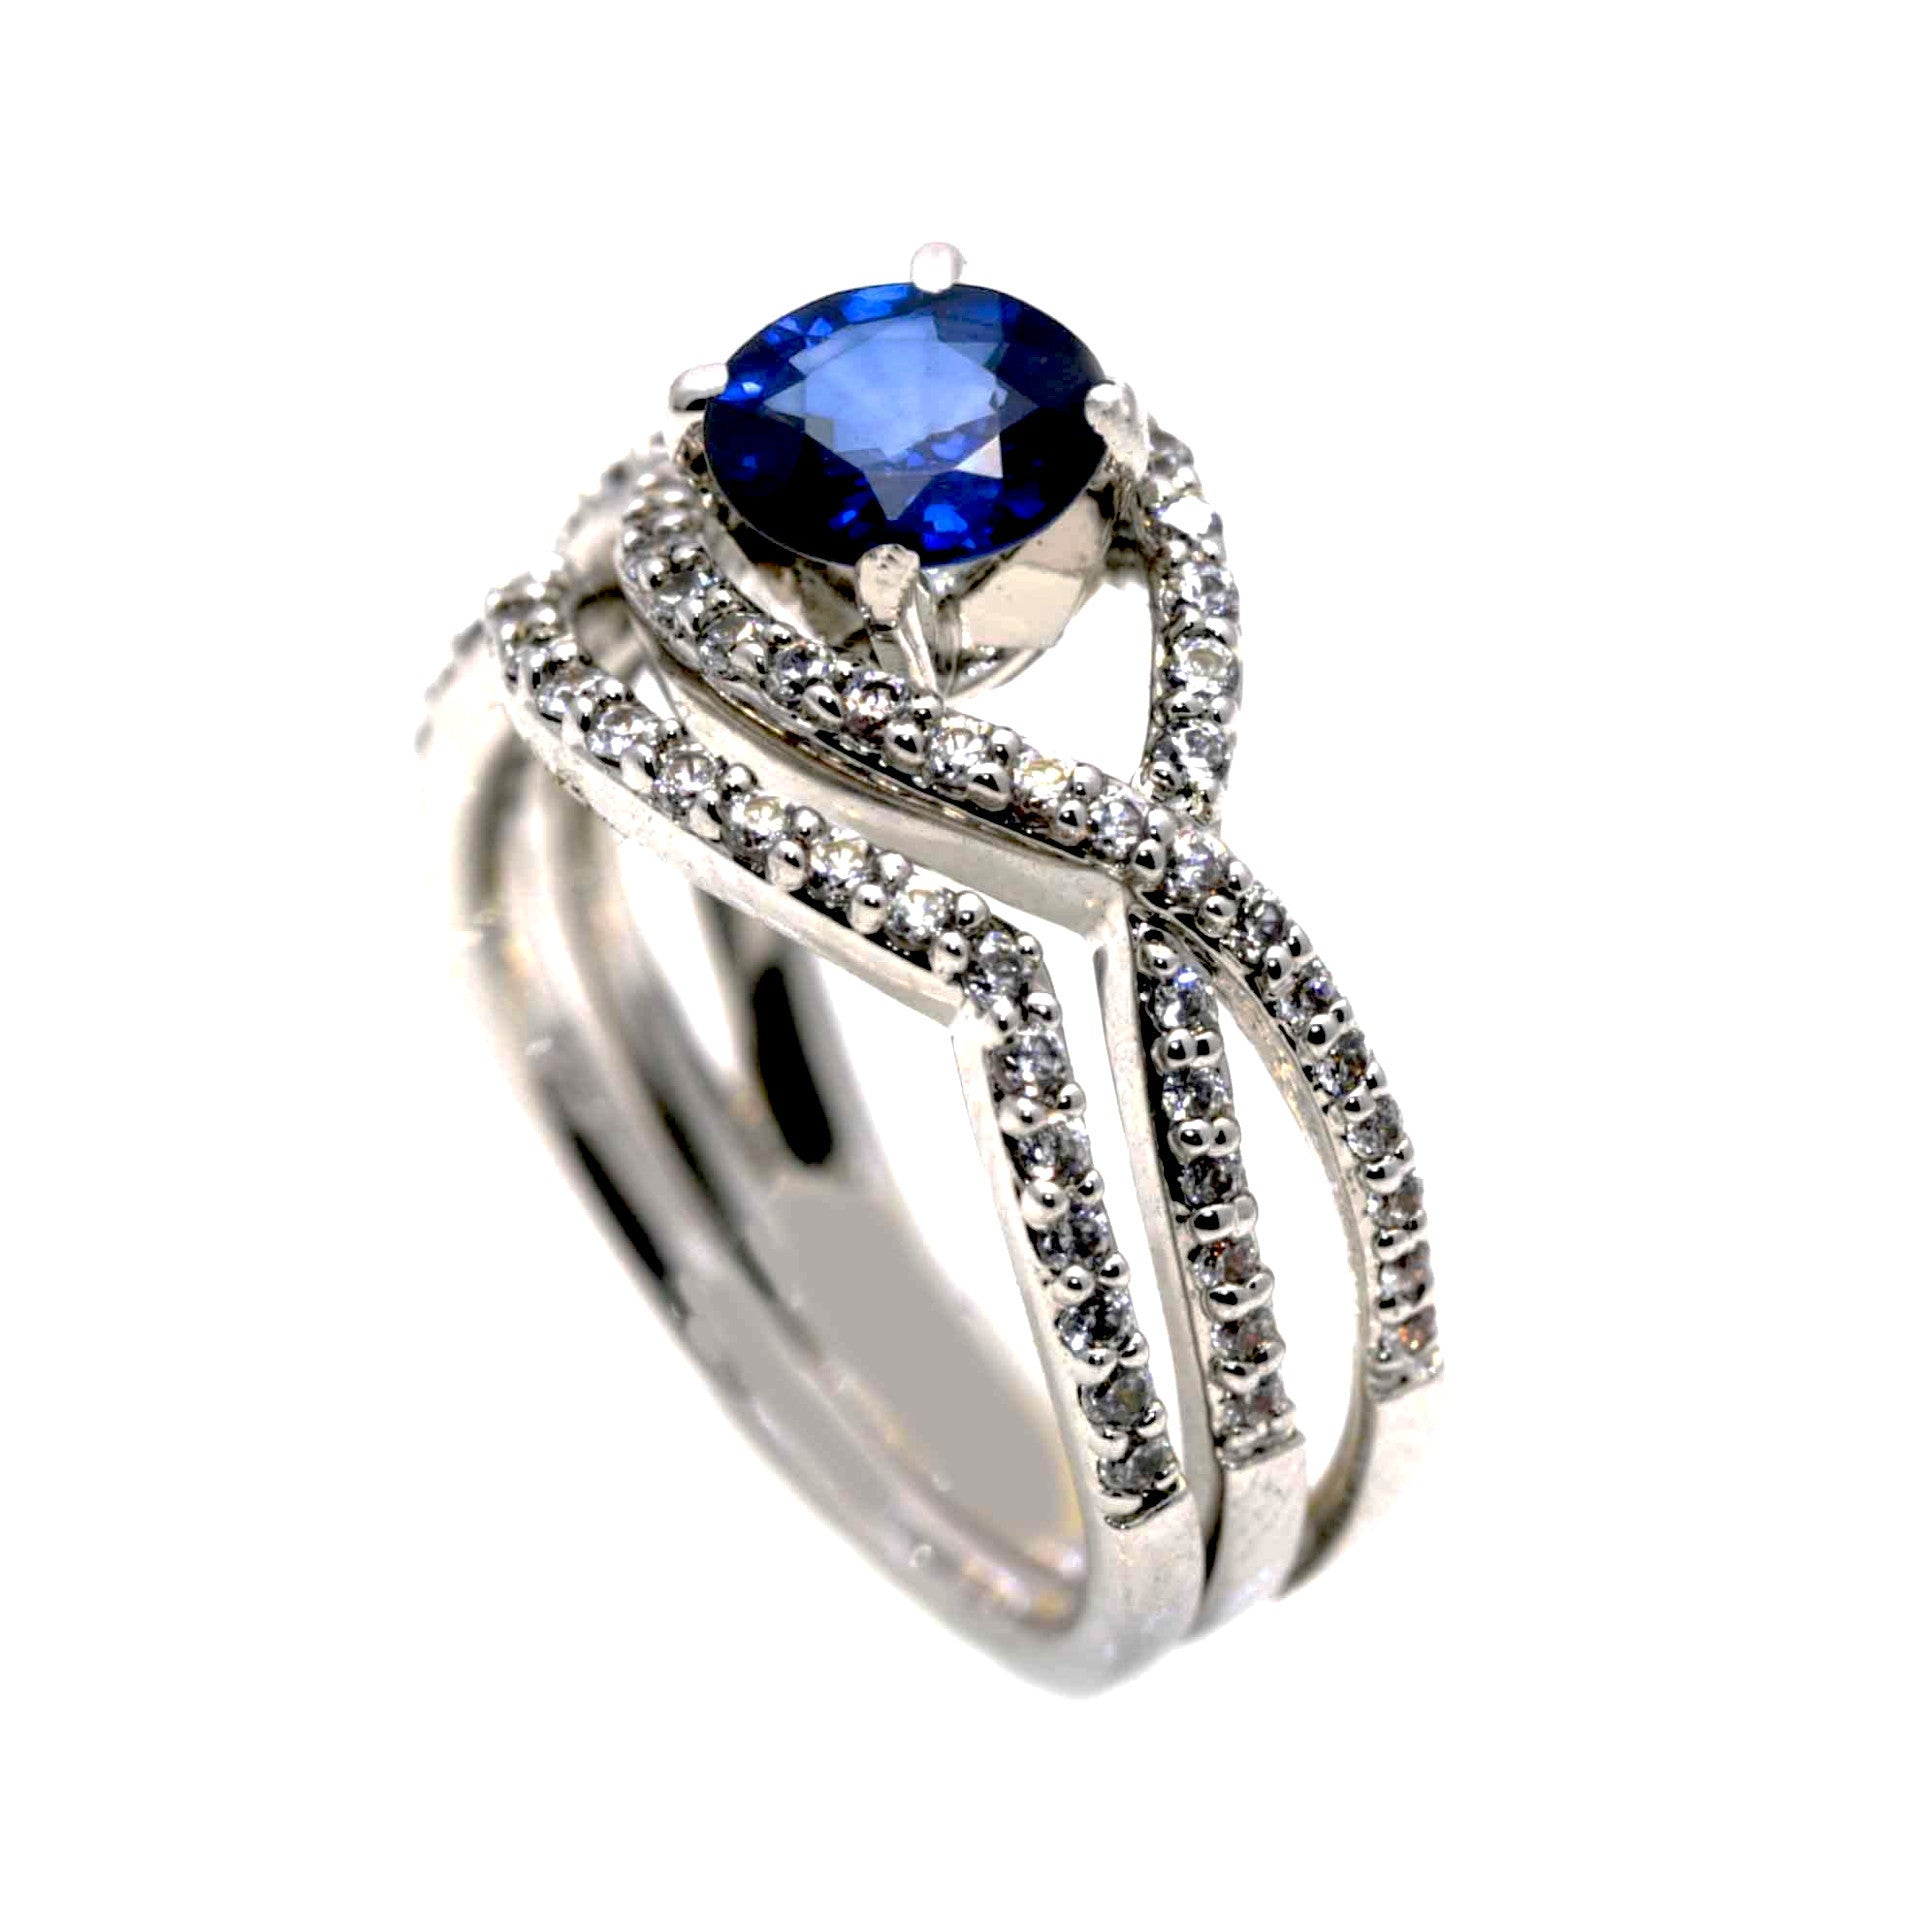 Blue Sapphire Gemstone Engagement Ring & Wedding Set, Unique Infinity Style With .75 Carat Diamonds, Split Shank  - SP85040